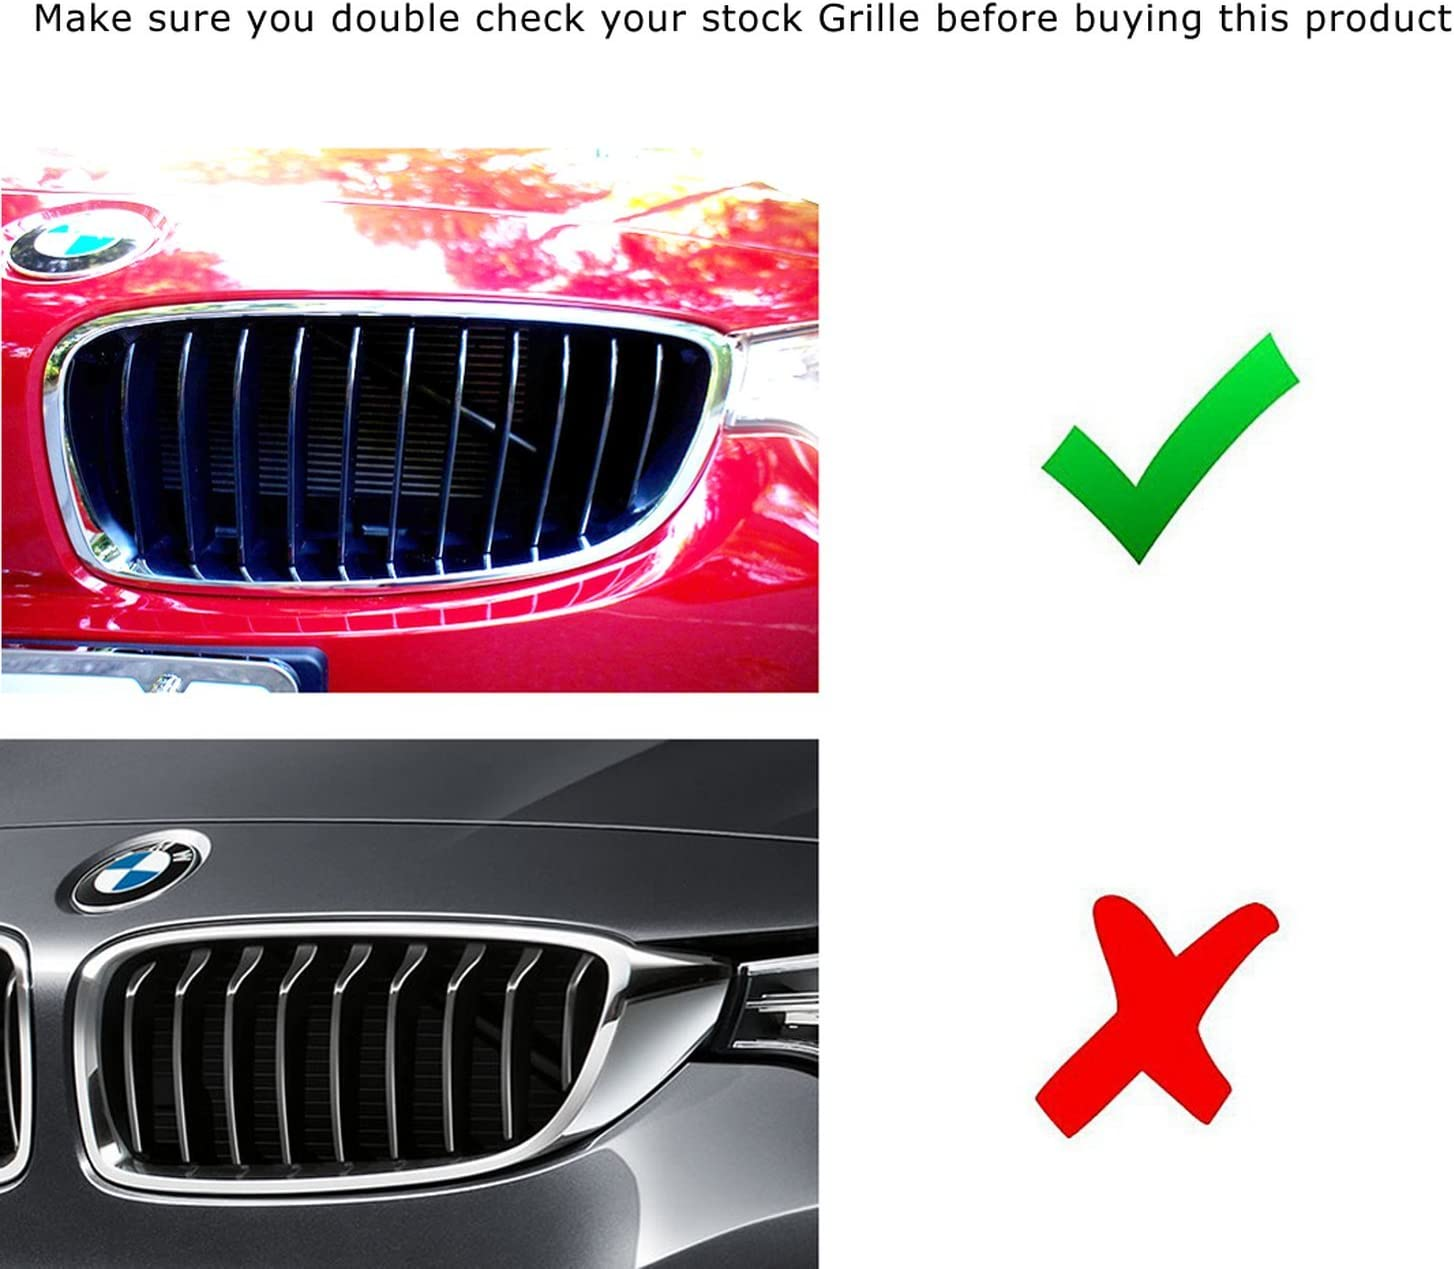 iJDMTOY Exact Fit //////M-Colored Grille Insert Trims For 2014-up BMW F32 4 Series 428i 435i 430i 440i etc w// 11-Bean Standard Kidney Grille